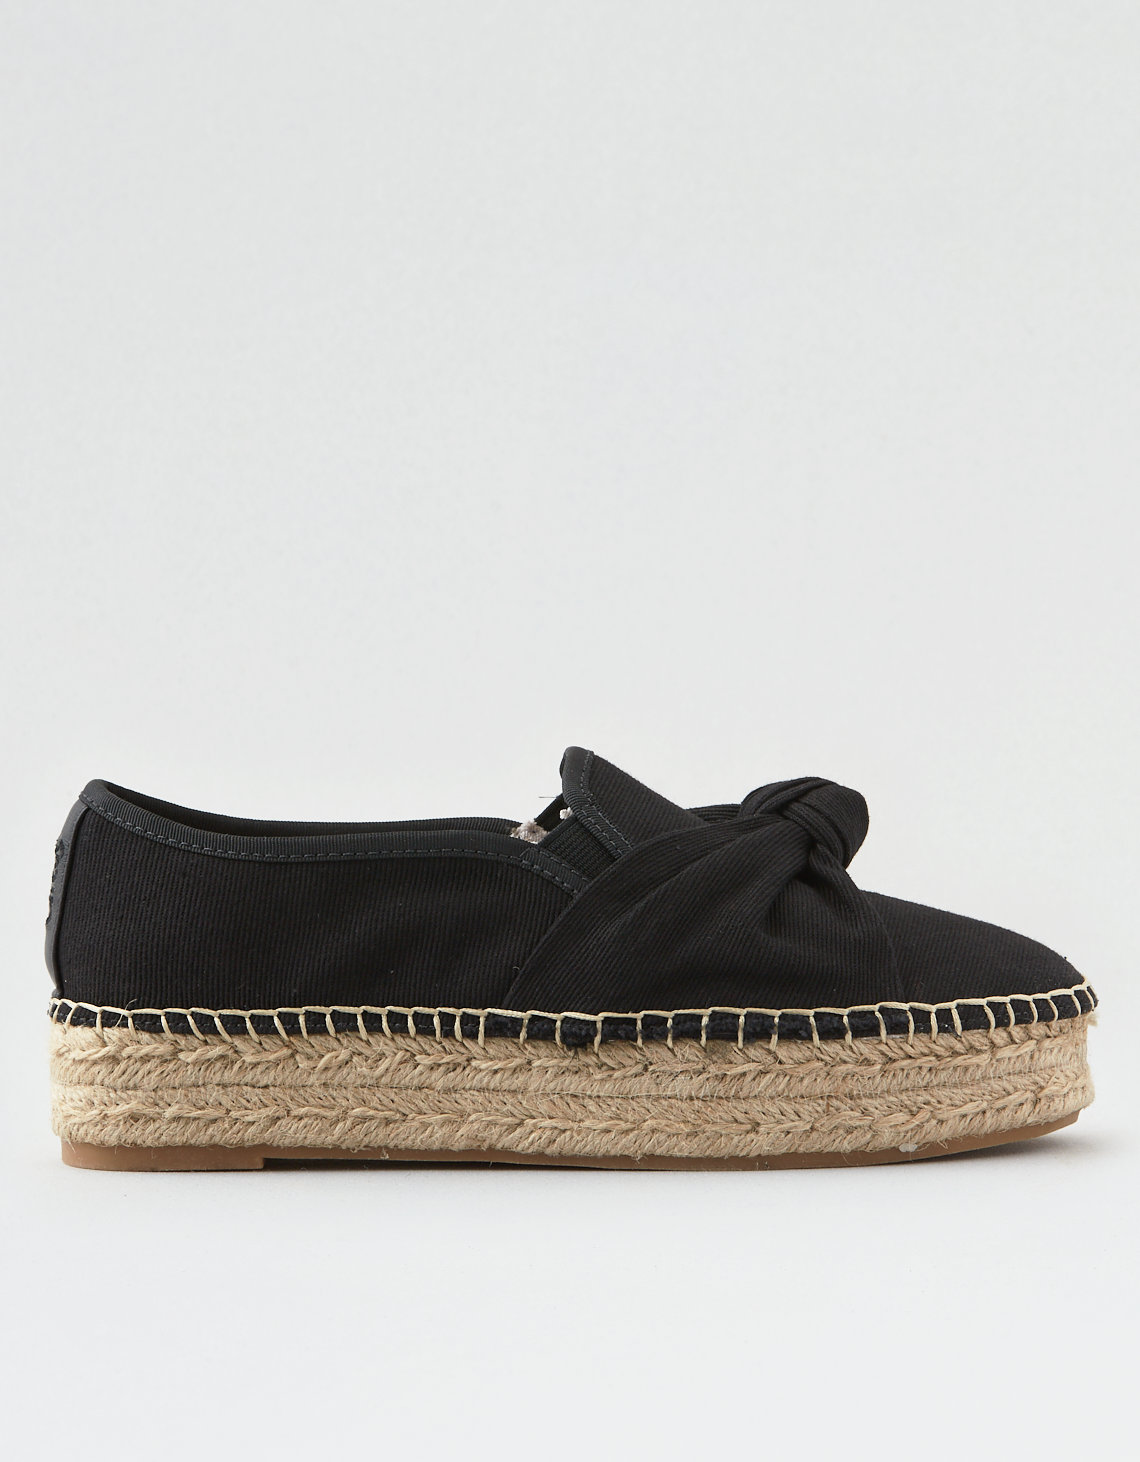 f38abe5b2 Circus By Sam Edelman Columbia Espadrilles Shoes. Placeholder image.  Product Image